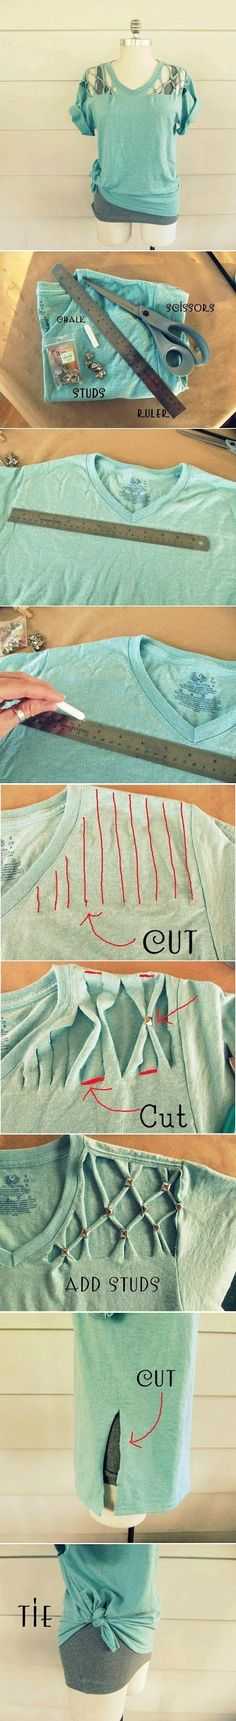 How To Make a Cool Studded T-Shirt